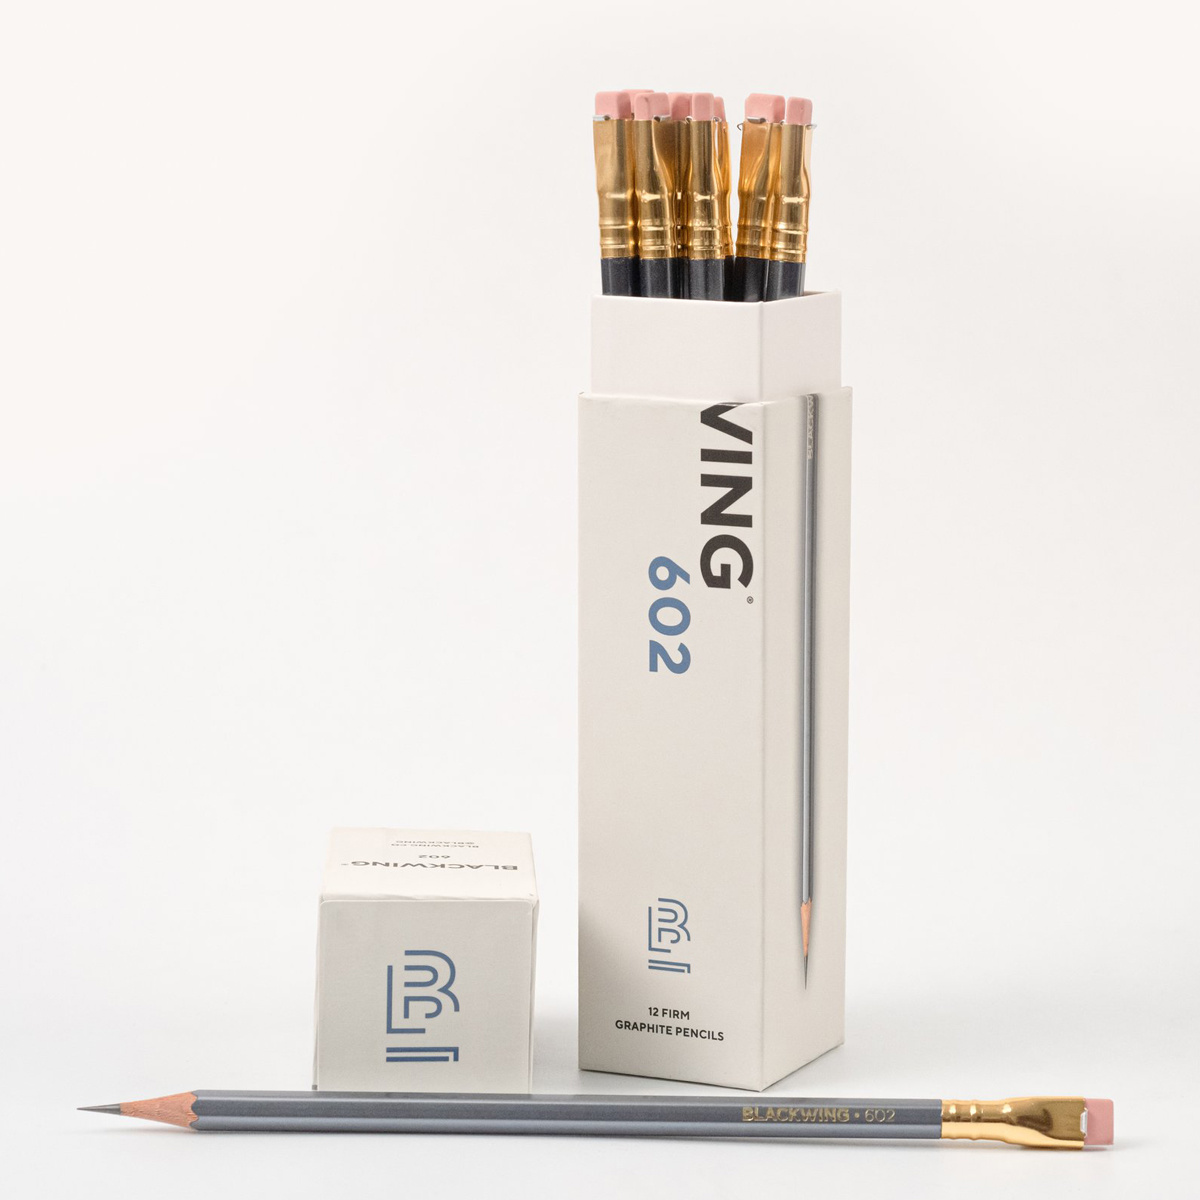 Palomino Blackwing 602 Pencil Set